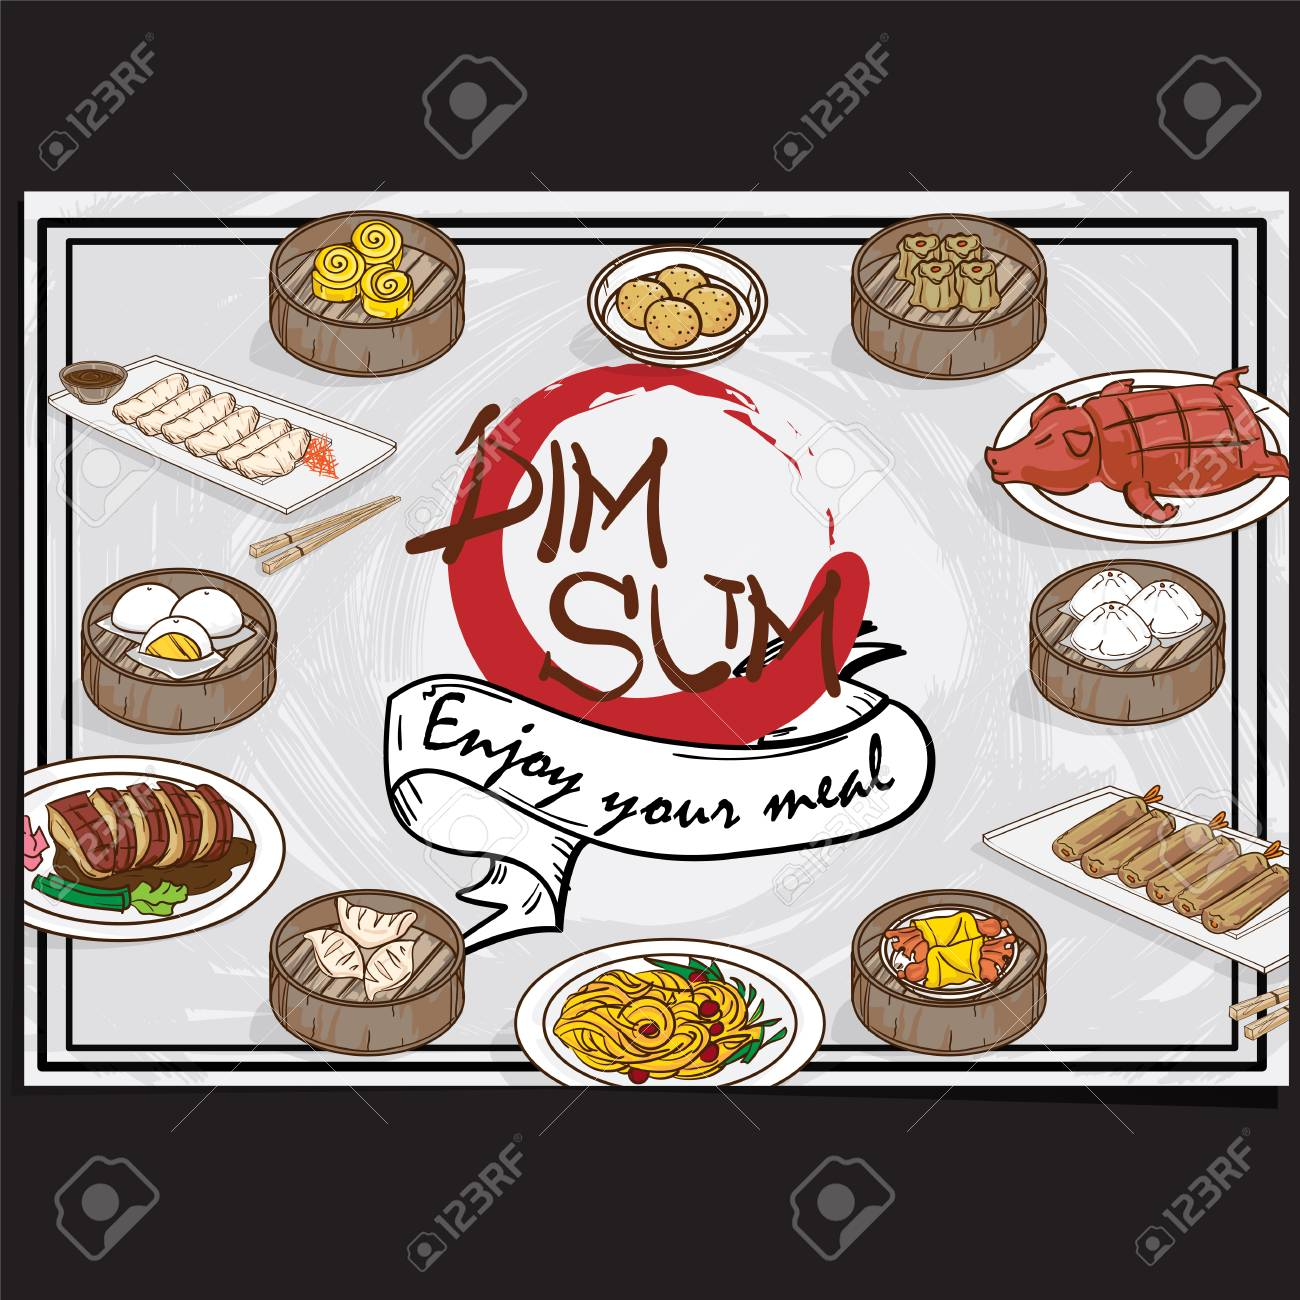 Chinese Food Menu Design Template Graphic Royalty Free Cliparts Vectors And Stock Illustration Image 96360260